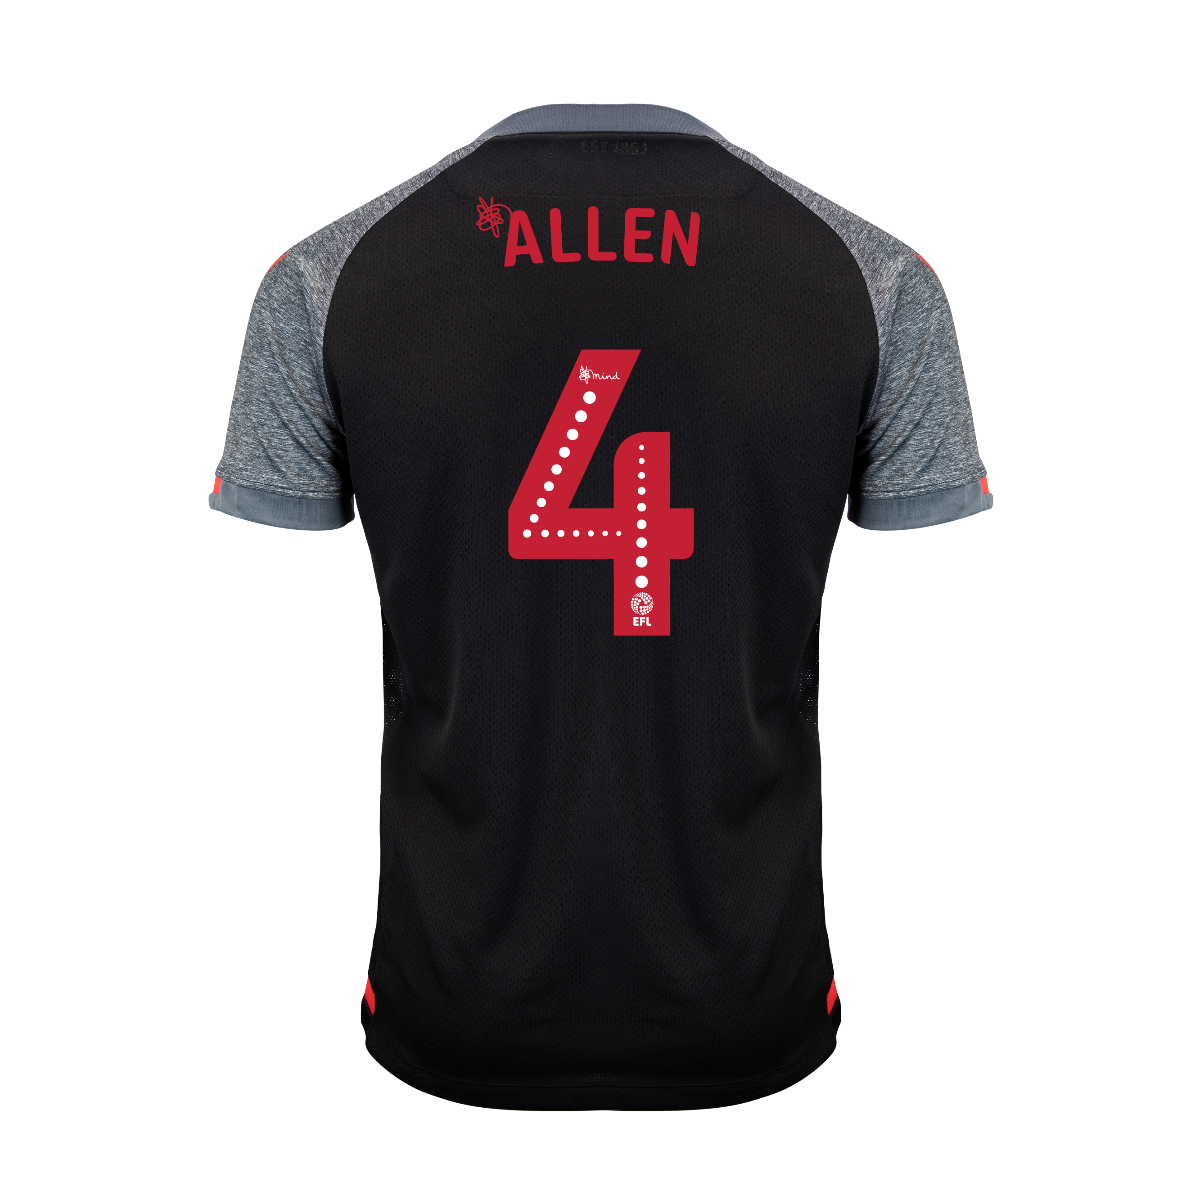 2019/20 Adult Away SS Shirt - Allen